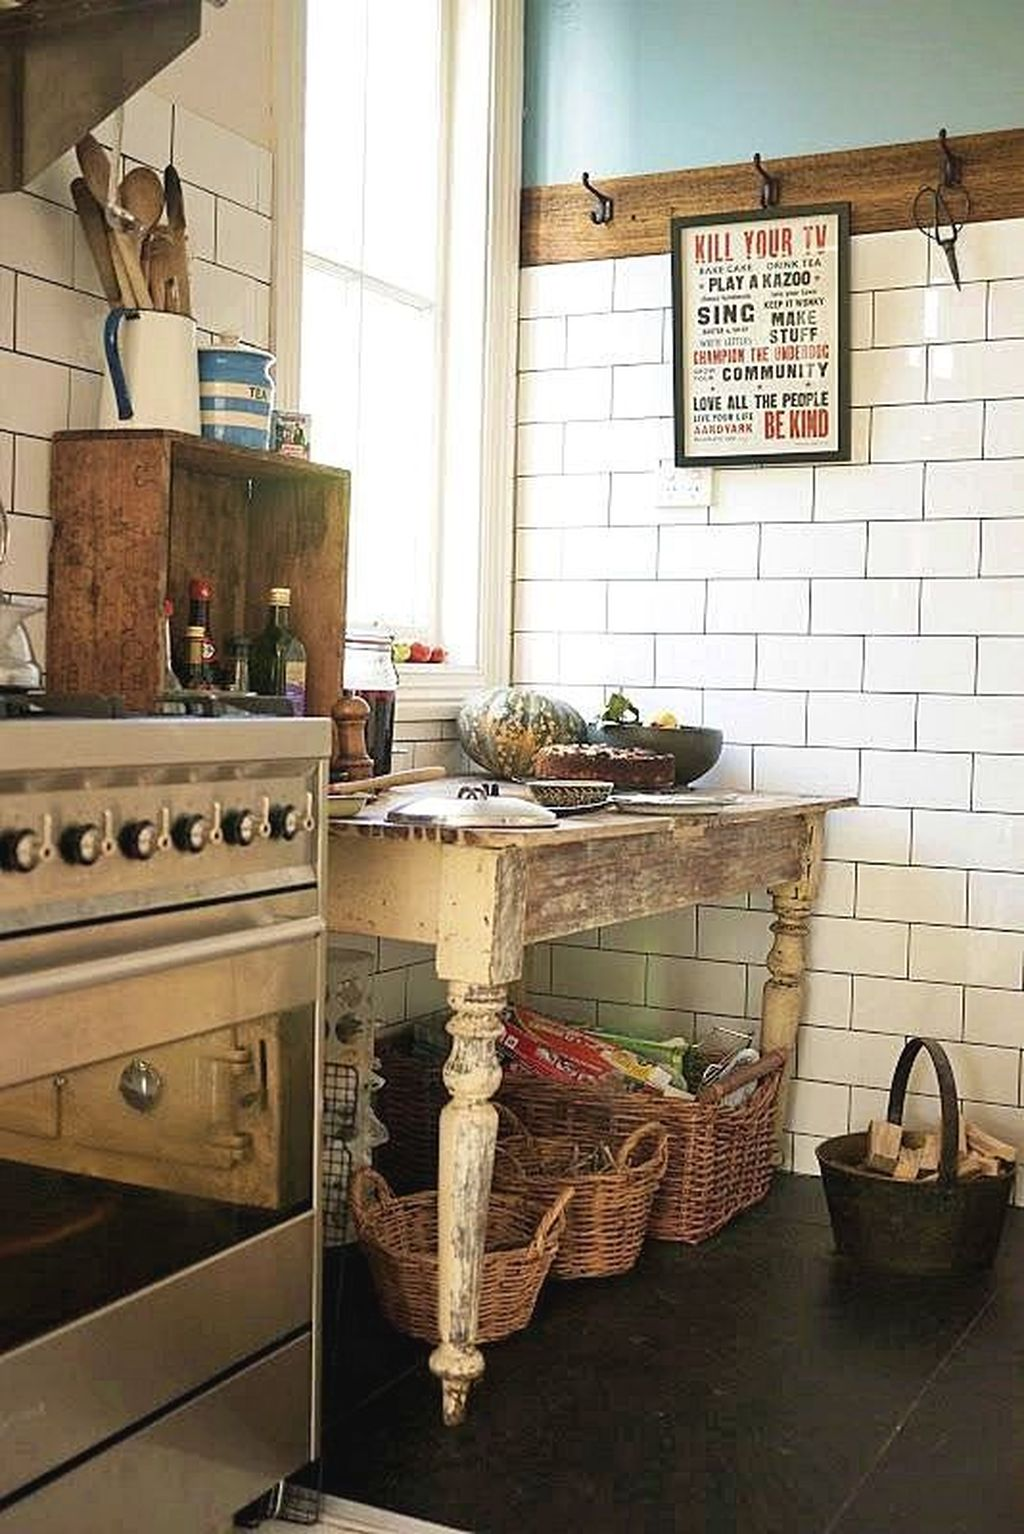 Inspiring Country Kitchen Decor Ideas You Should Copy 18